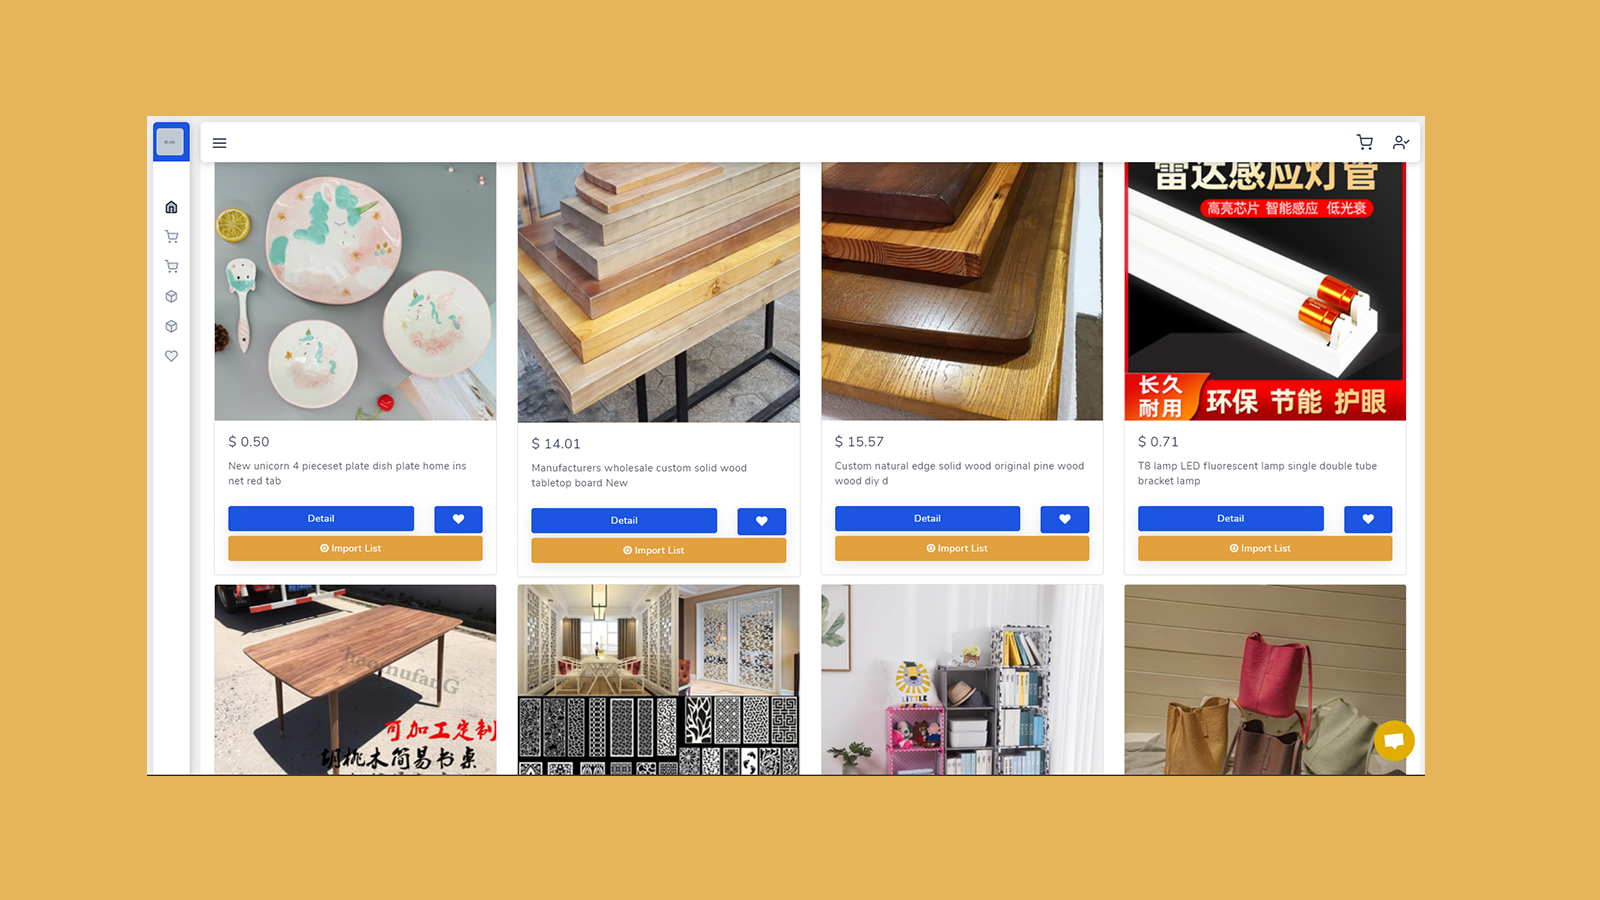 Search 1688 Products